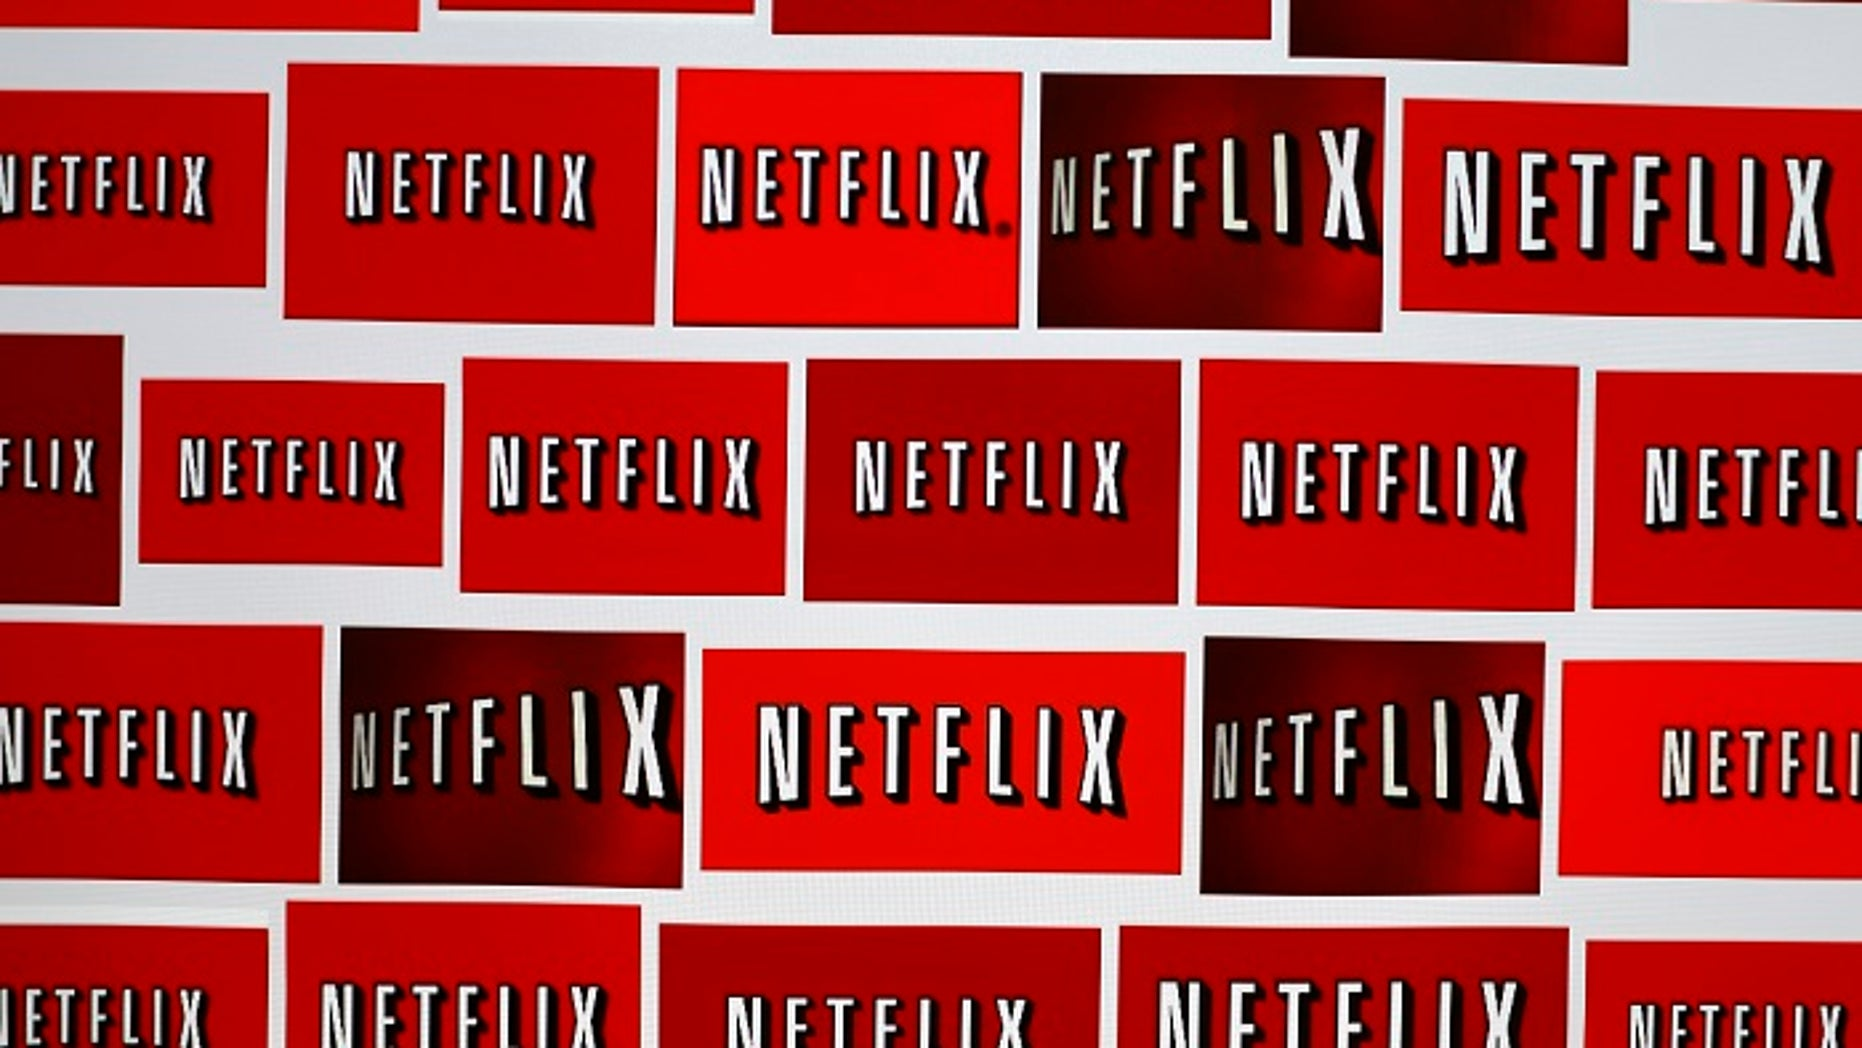 The Netflix logo is shown in this illustration photograph in Encinitas, California October 14, 2014. Netflix Inc  shares were down 3.1 percent at $435.28 after the announcement. The streaming video company will announced its quarterly results later on October 15. Picture taken October 14, 2014. REUTERS/Mike Blake (UNITED STATES - Tags: ENTERTAINMENT MEDIA BUSINESS LOGO) - TM3EAAF0YT101